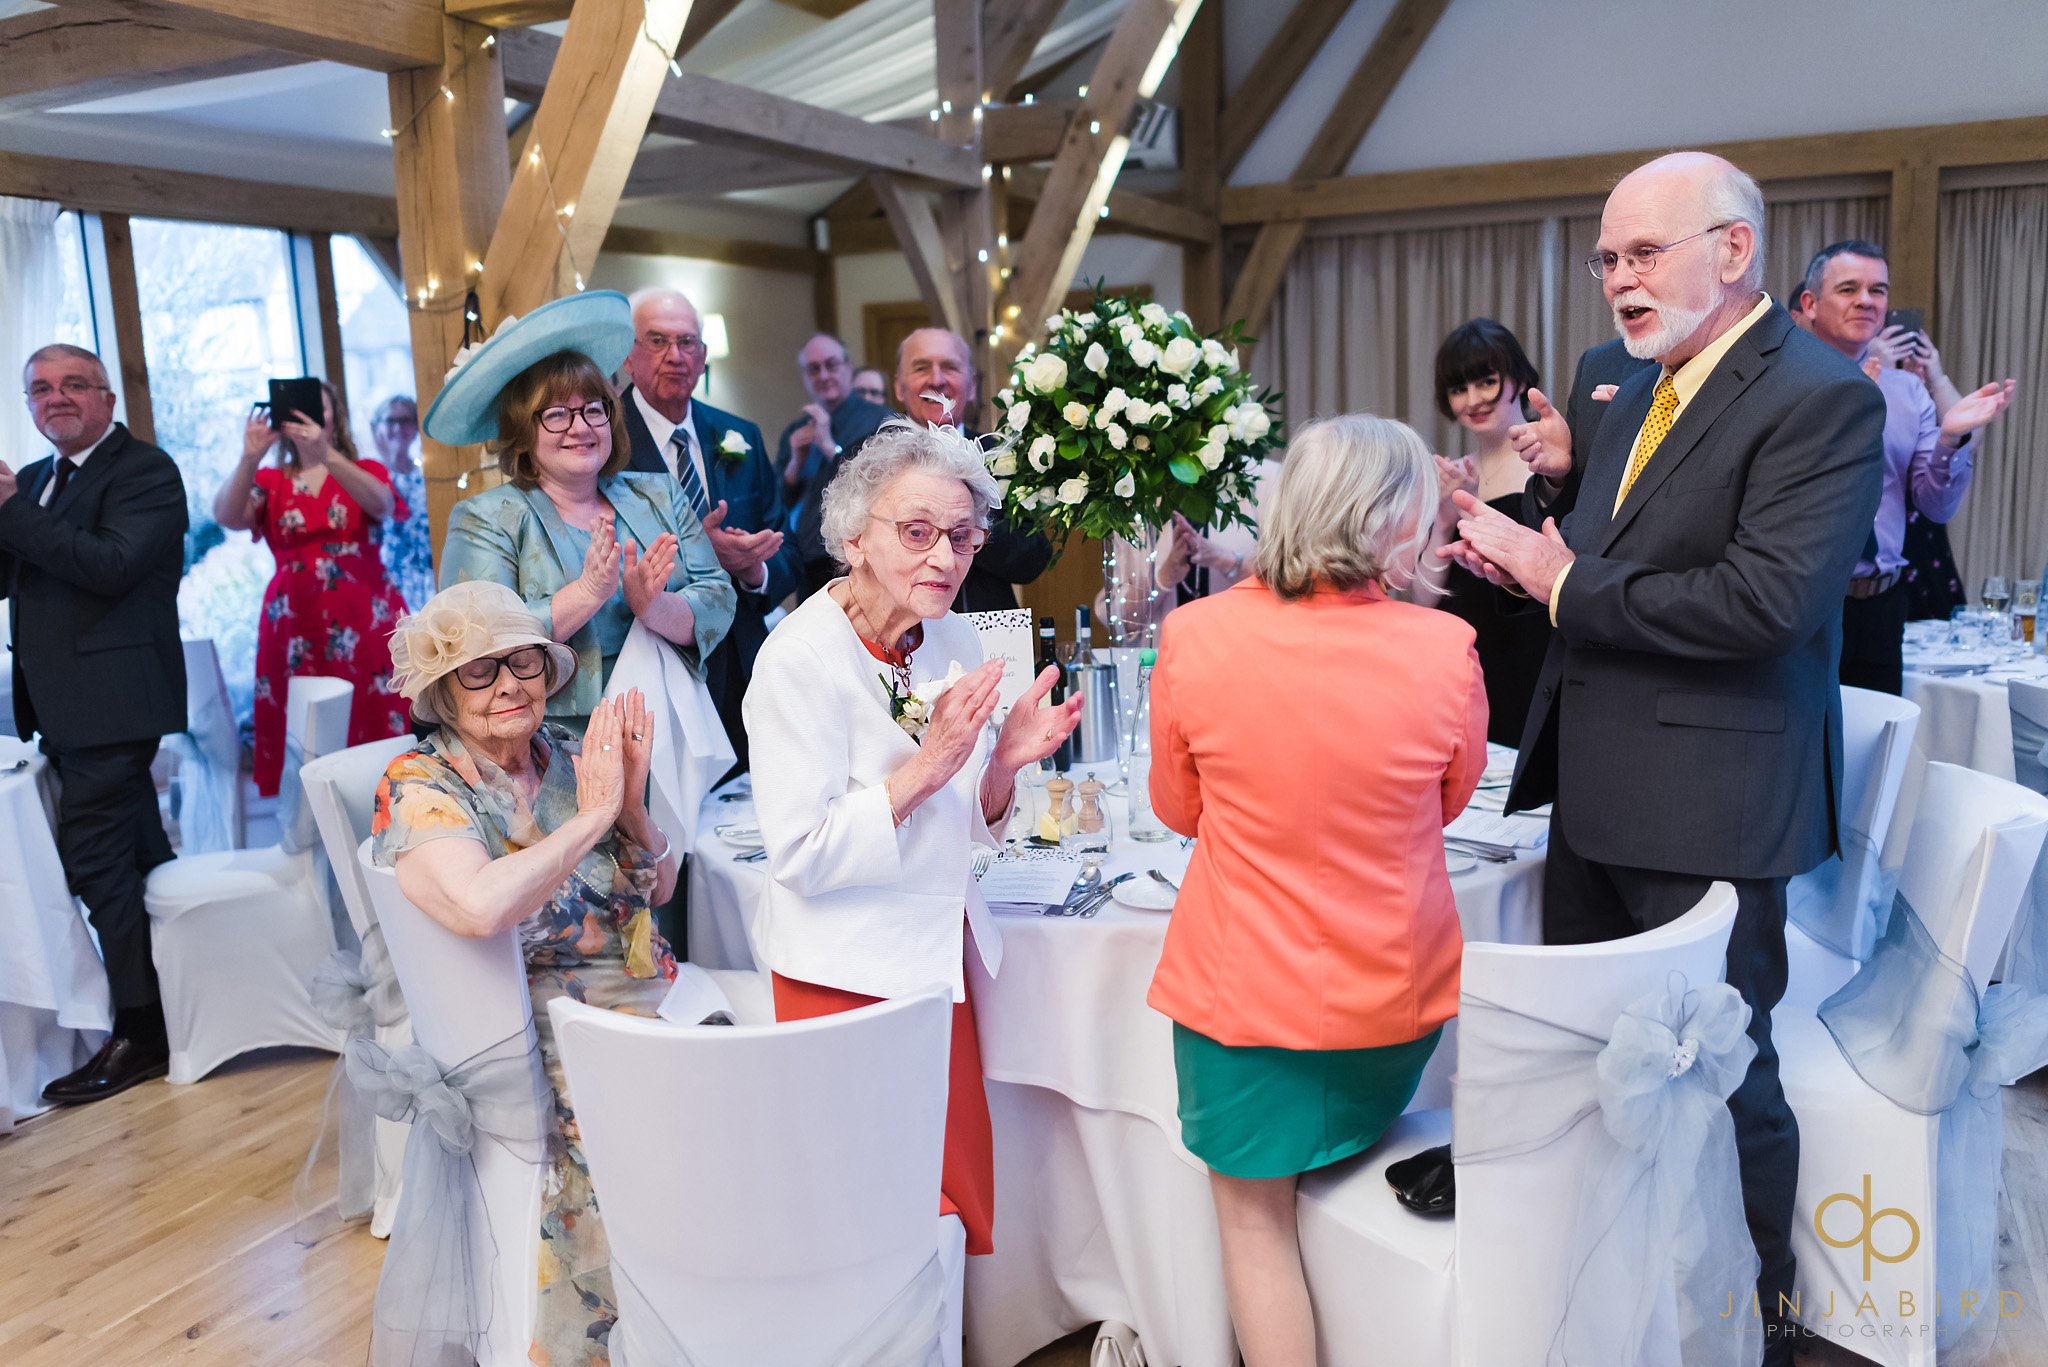 guests greeting bride and groom for wedding breakfast